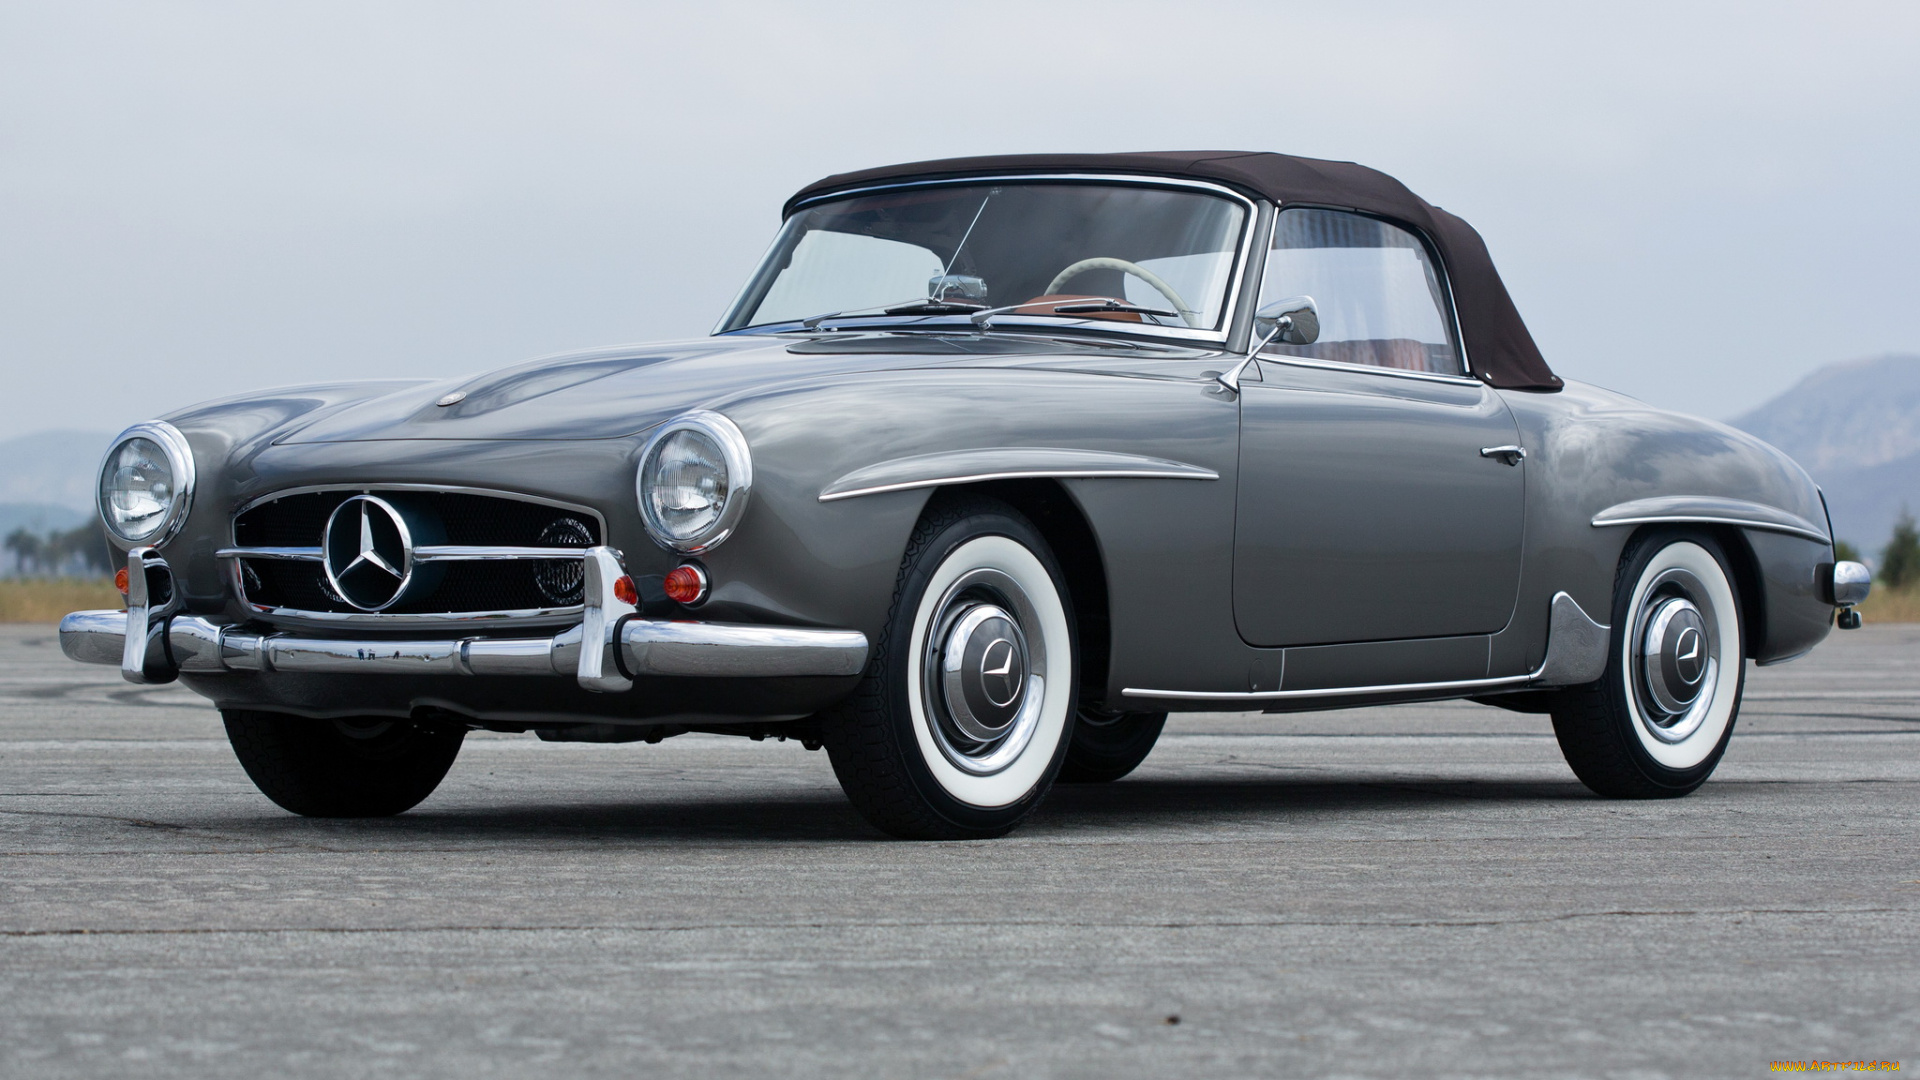 1955, mercedes-benz, 190sl, , us, spec, автомобили, mercedes-benz, mercedes, benz, 190sl, us, spec, ретро, g3, 1955, мерседес